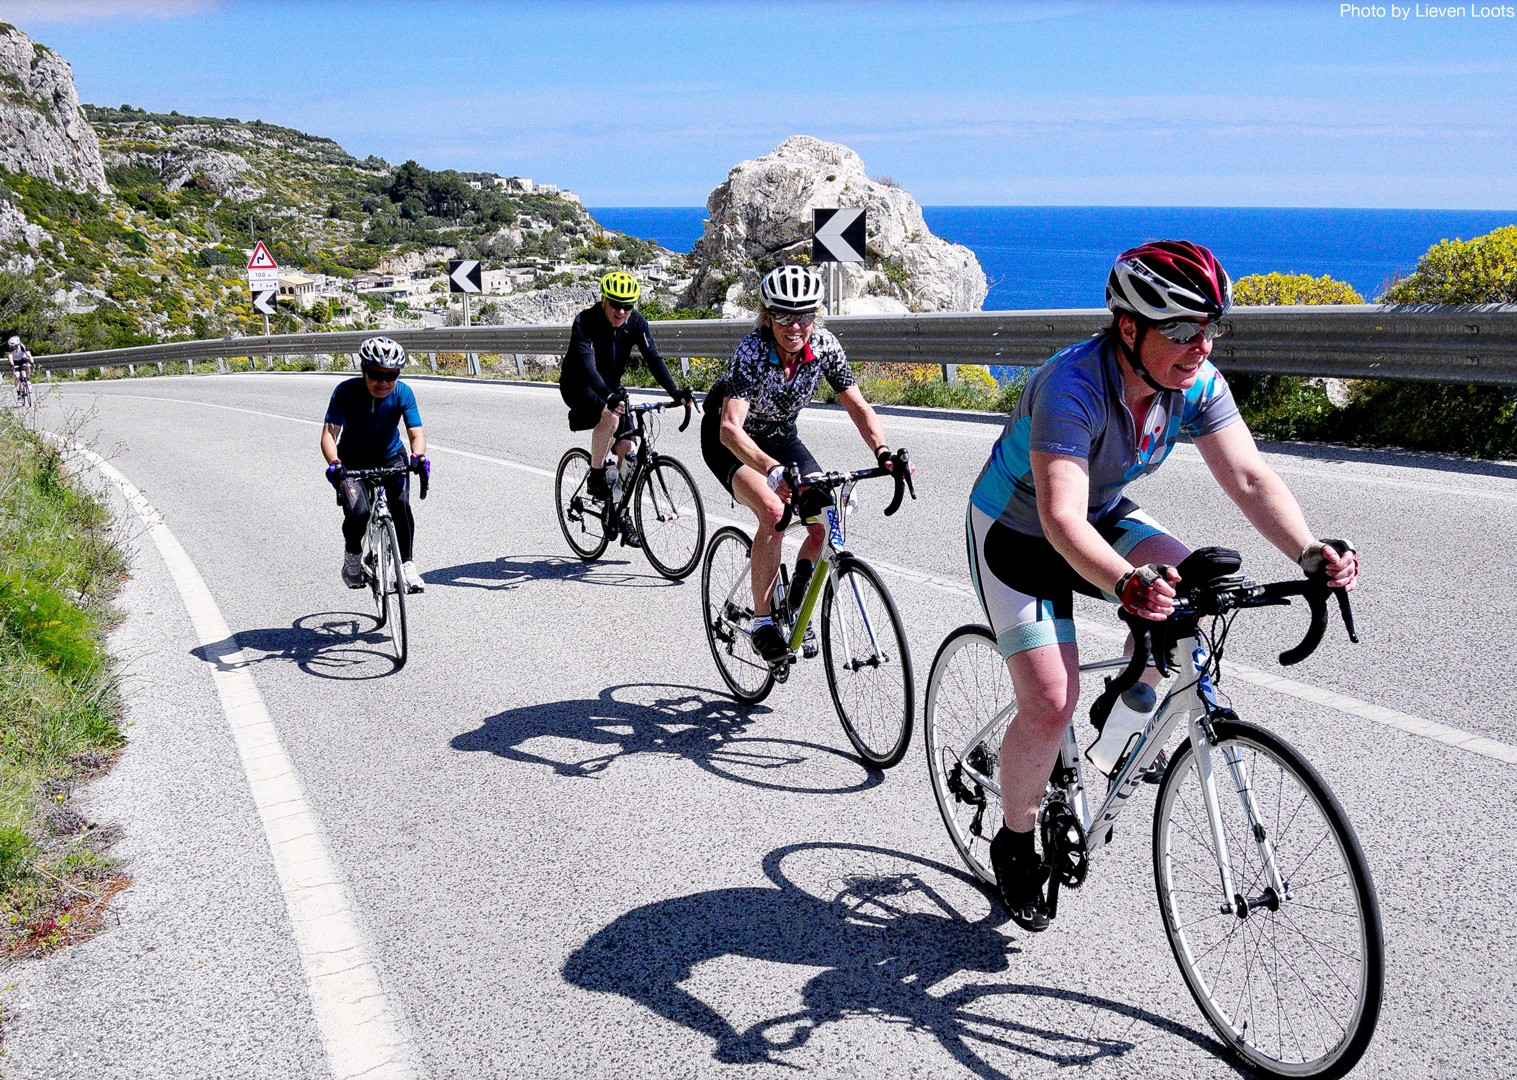 group-cycling-holiday-puglia-italy.jpg - Italy - Puglia - The Beautiful South - Road Cycling